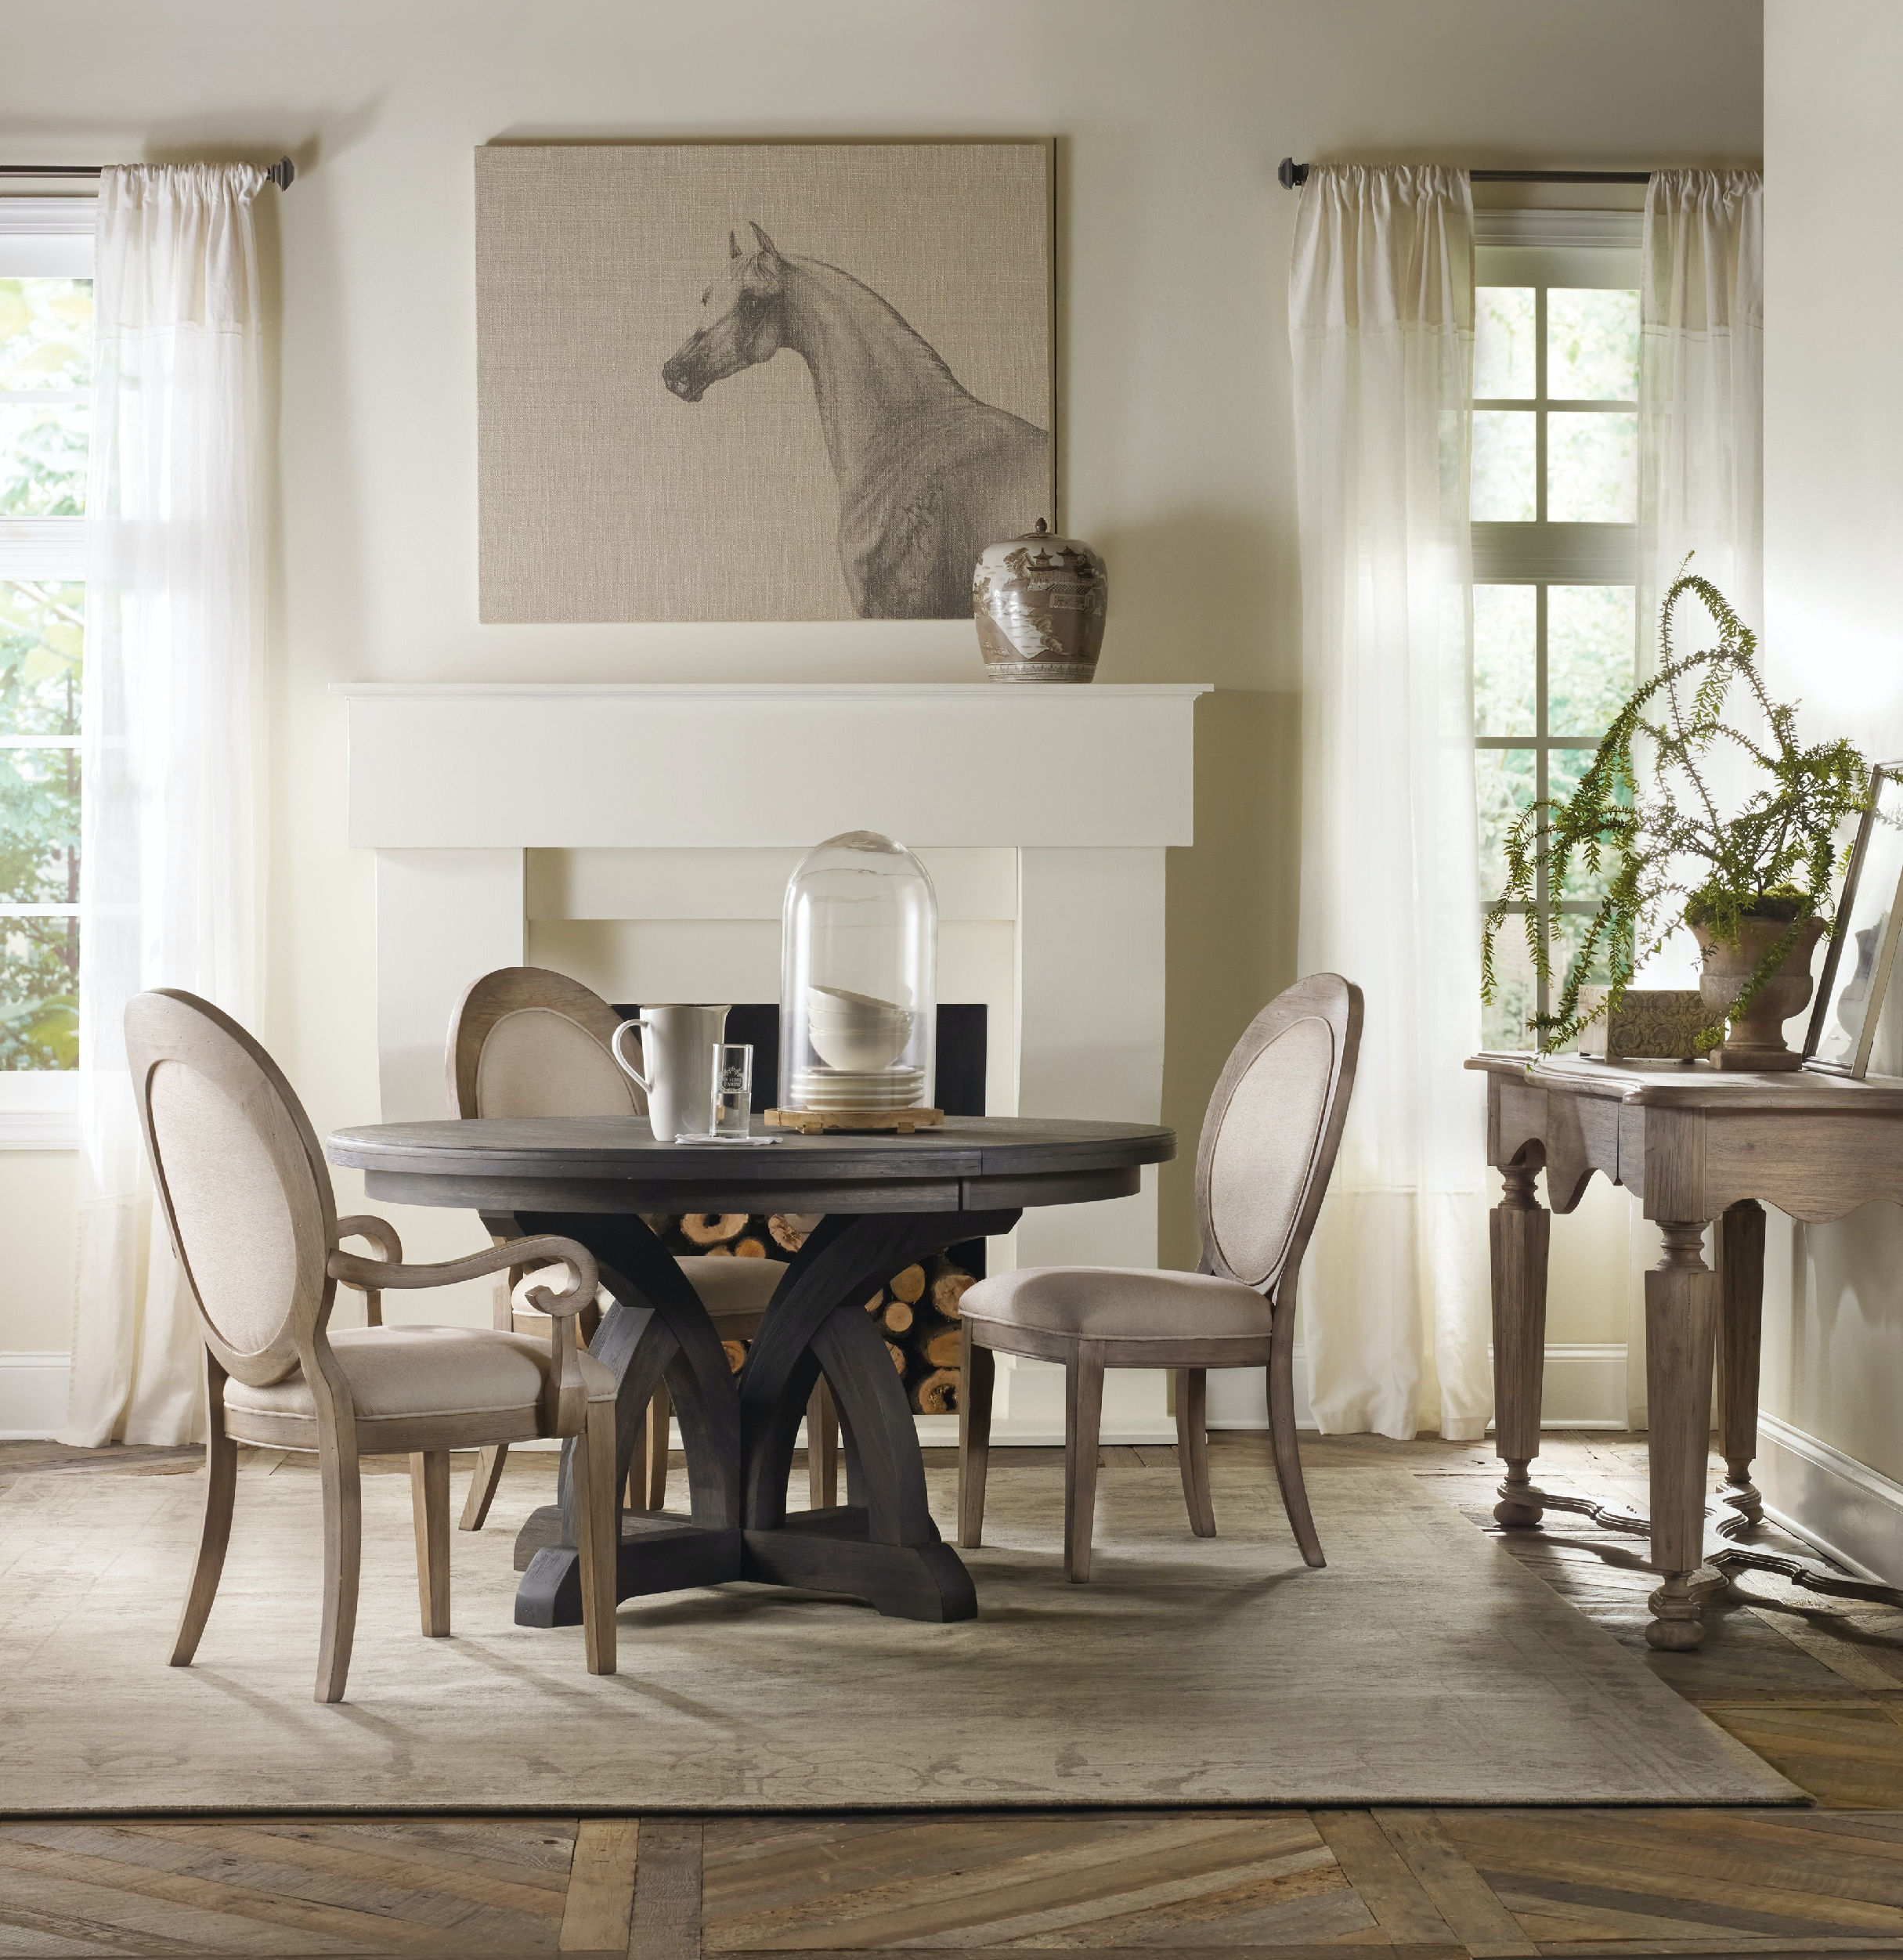 oval back dining room chairs kelty low love chair hooker furniture corsica side 5180 75412 collection video